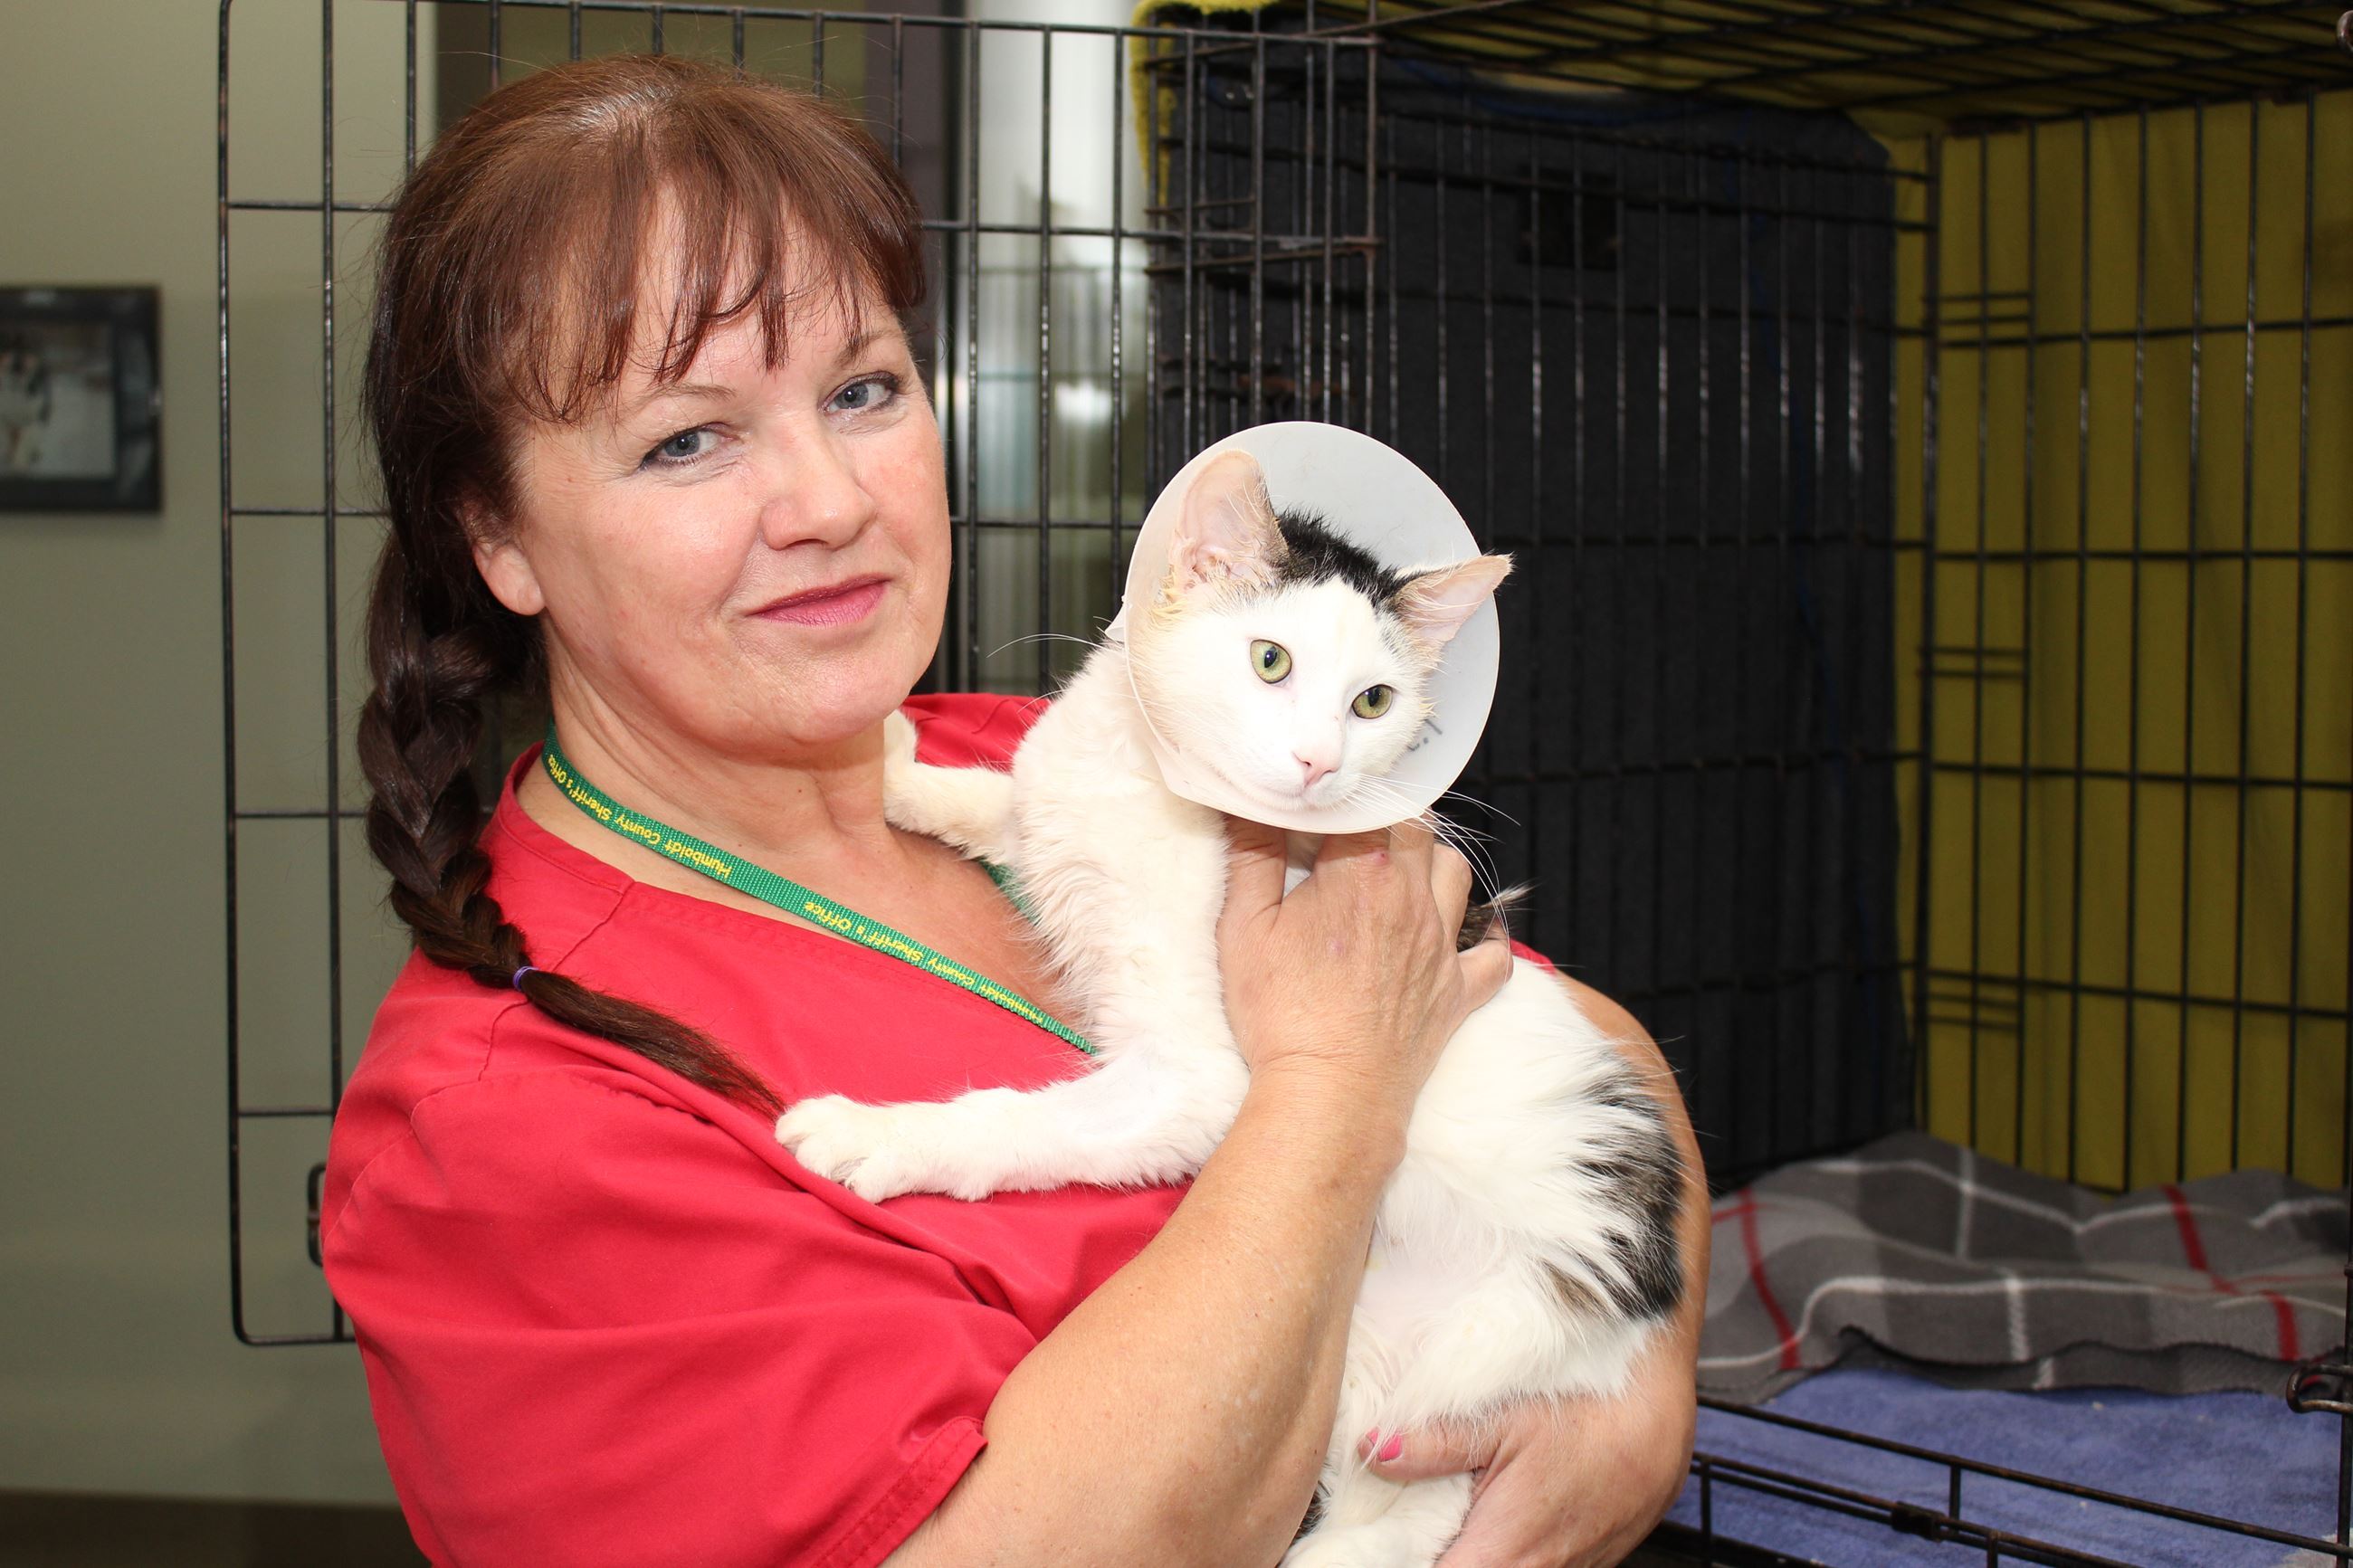 Female Animal Shelter Attendant holds a Cat